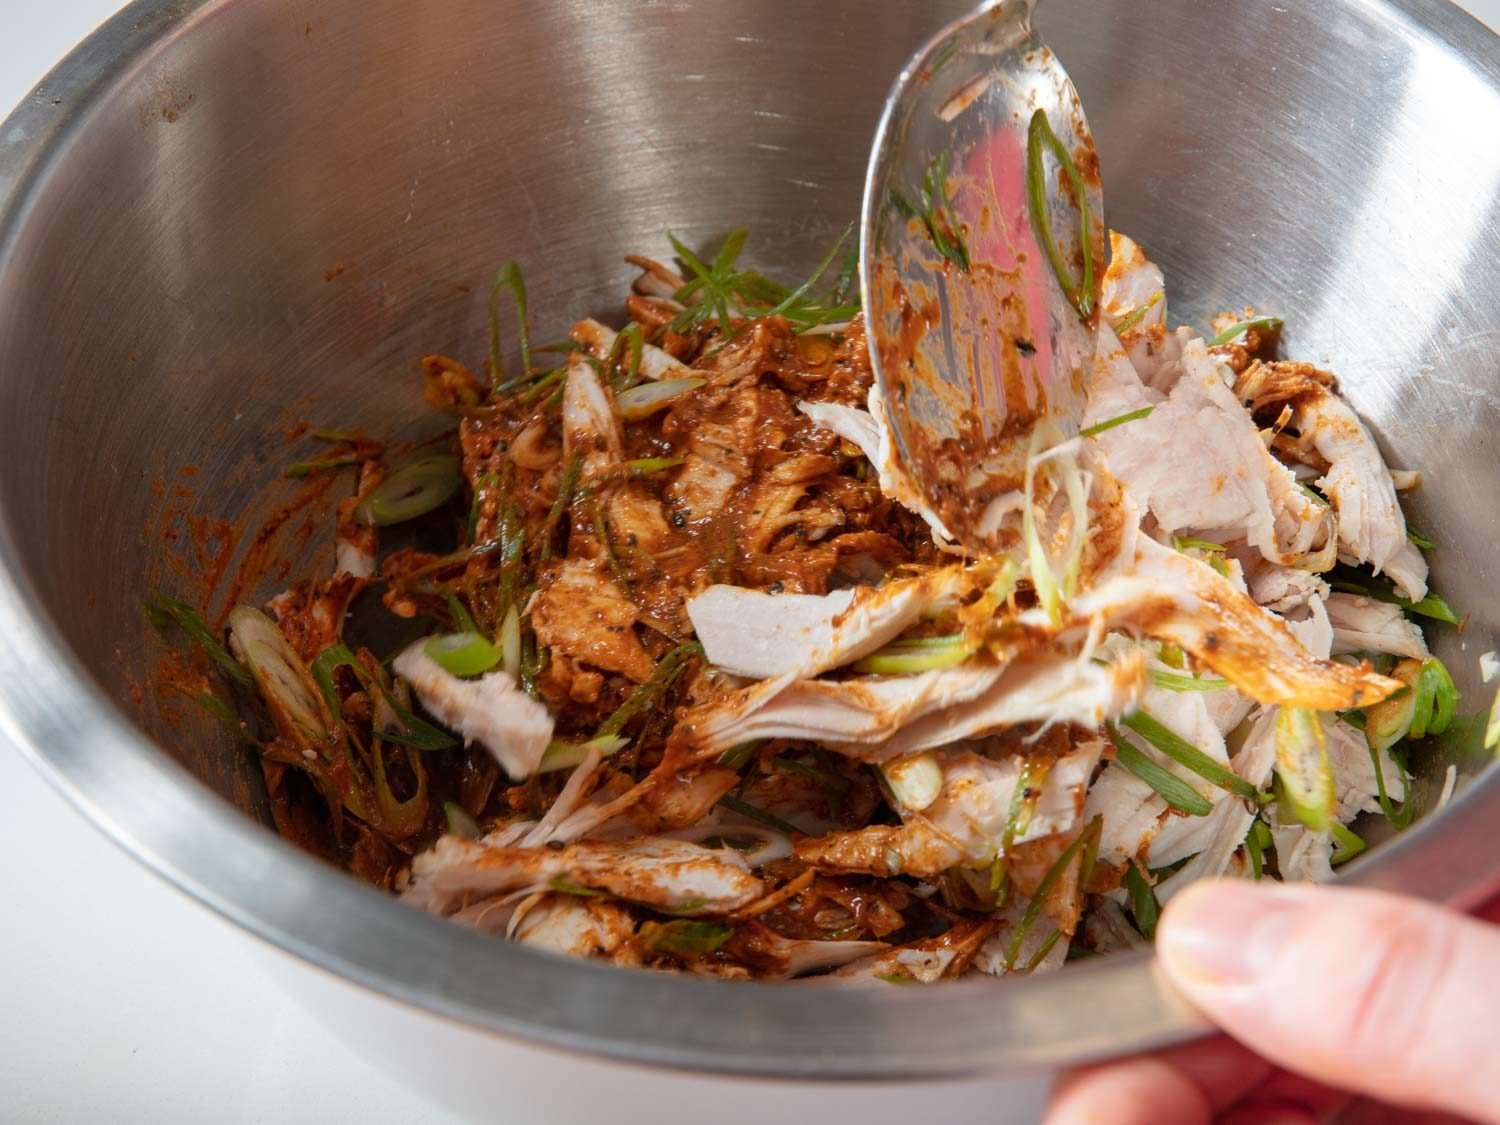 Mixing turkey together with dressing and sliced scallions in a mixing bowl.